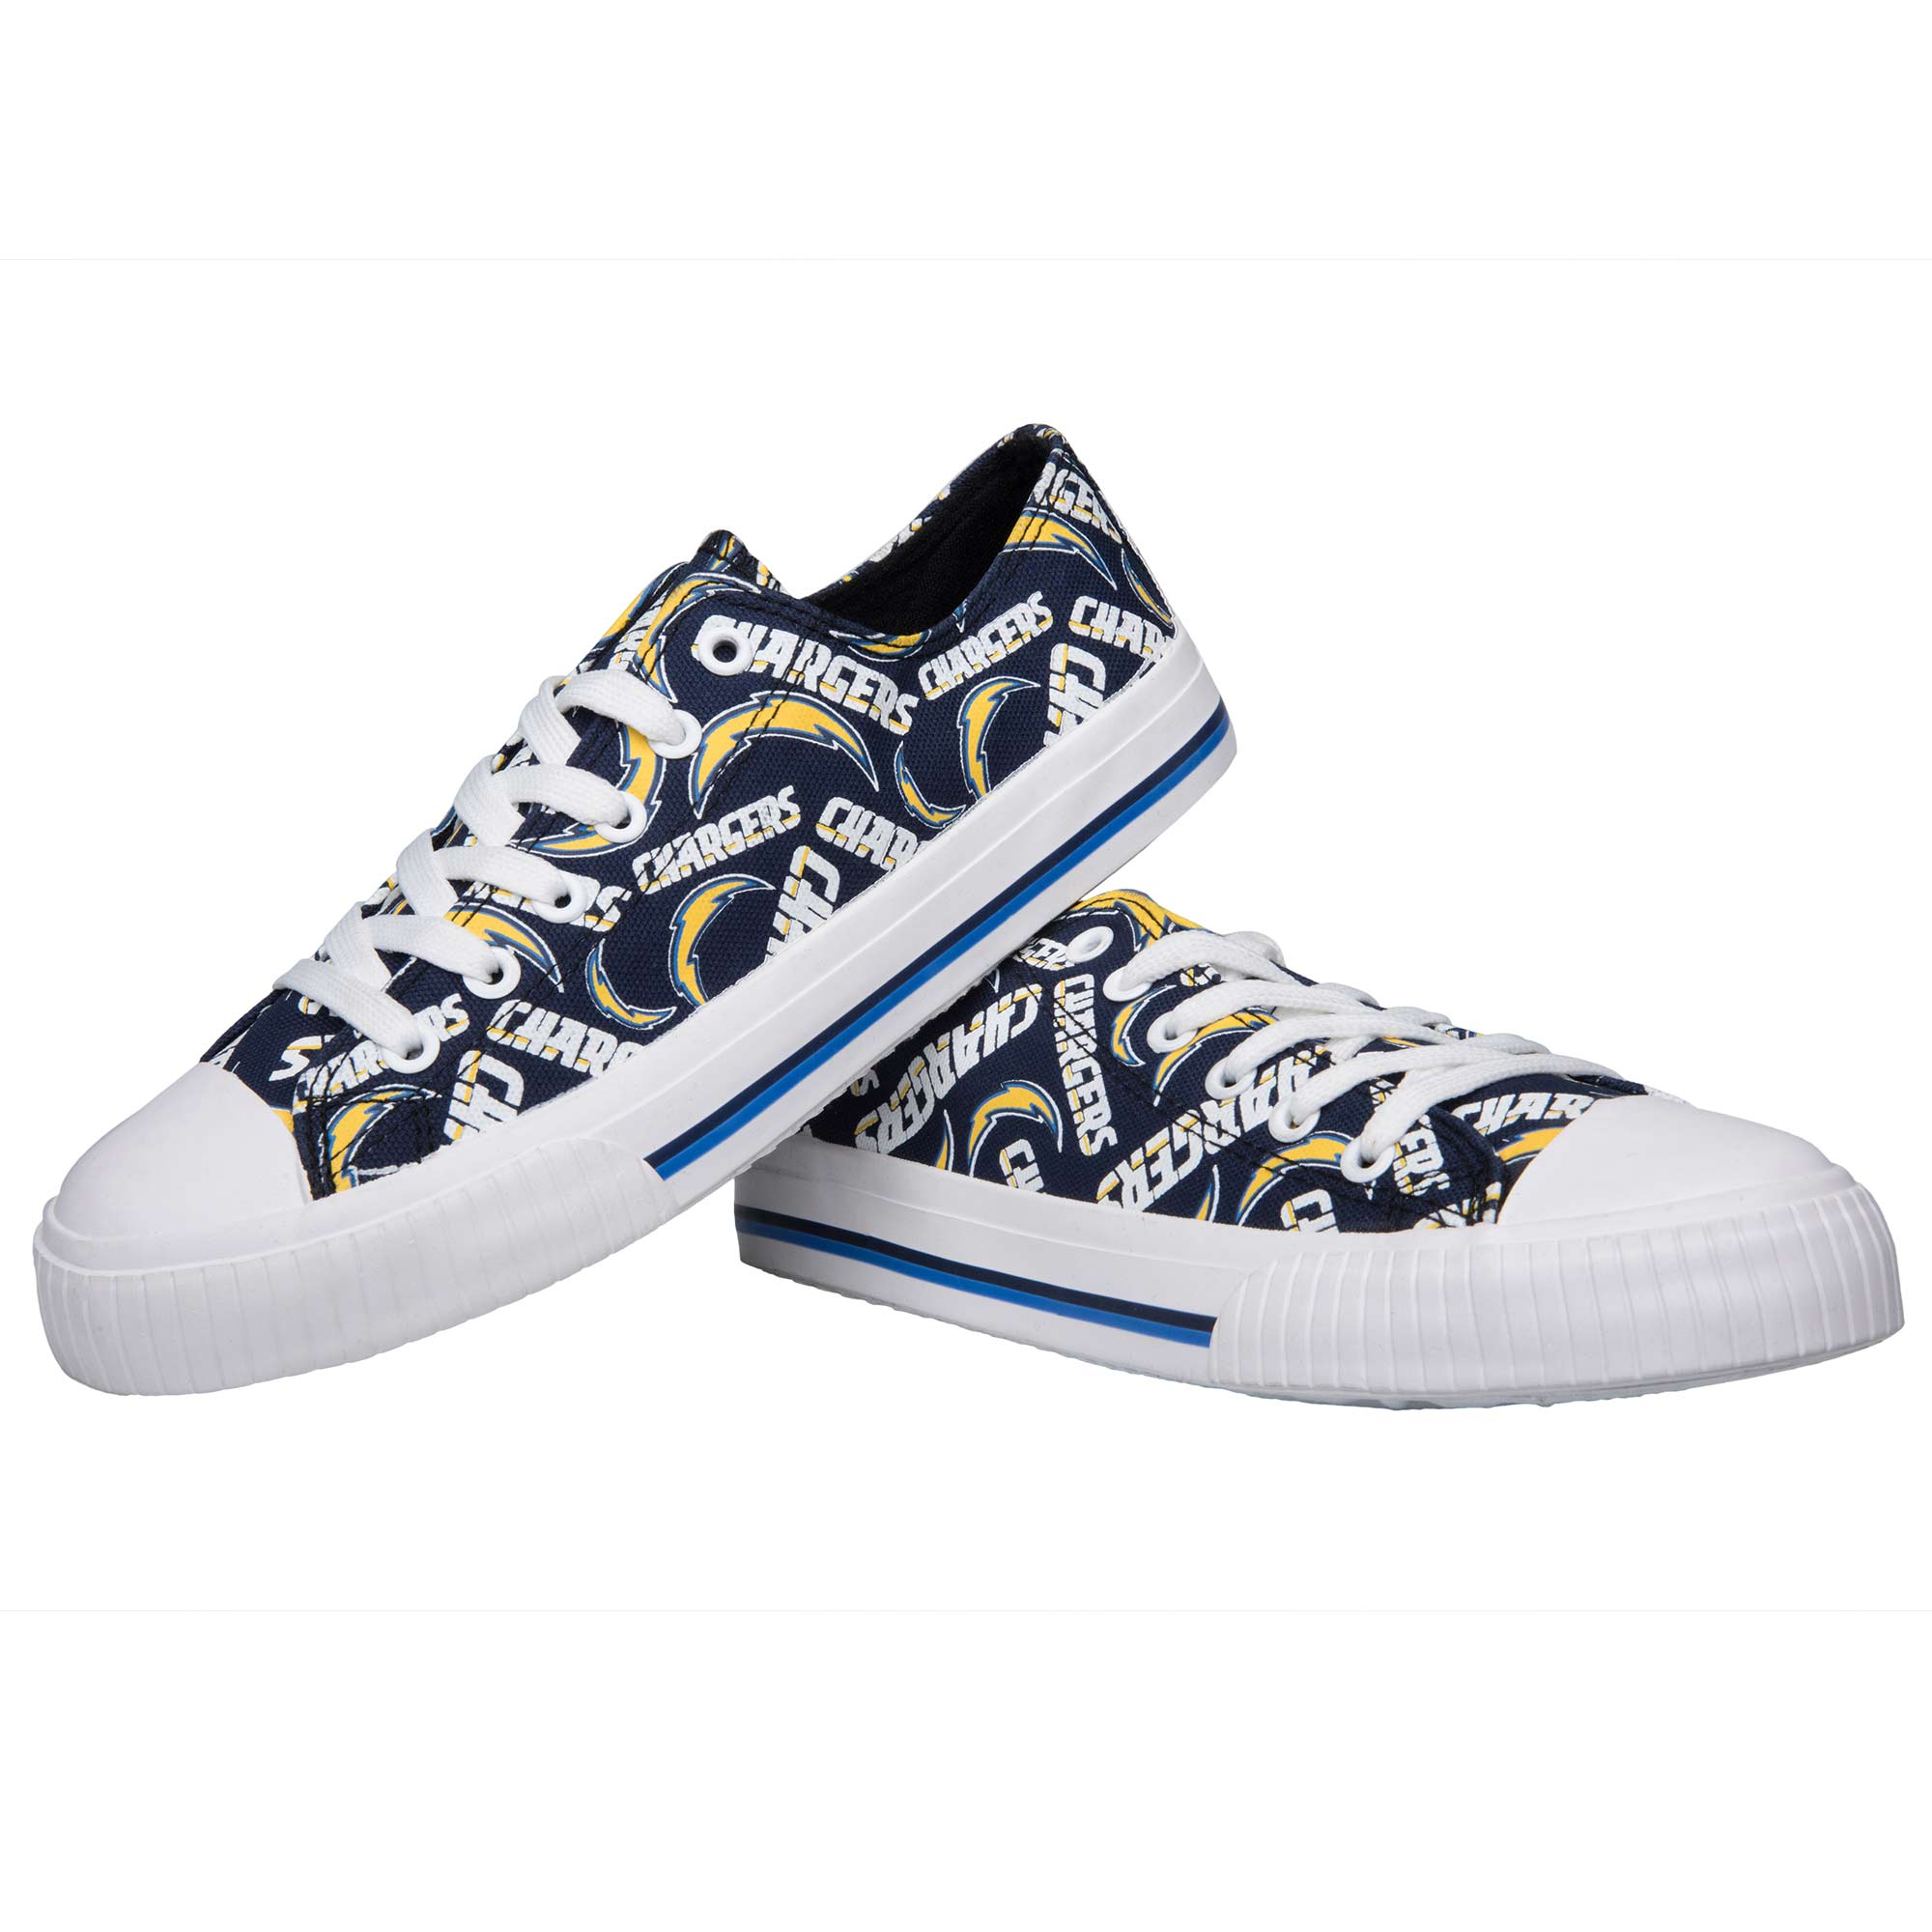 Los Angeles Chargers Women's Repeat Print Low Top Sneakers